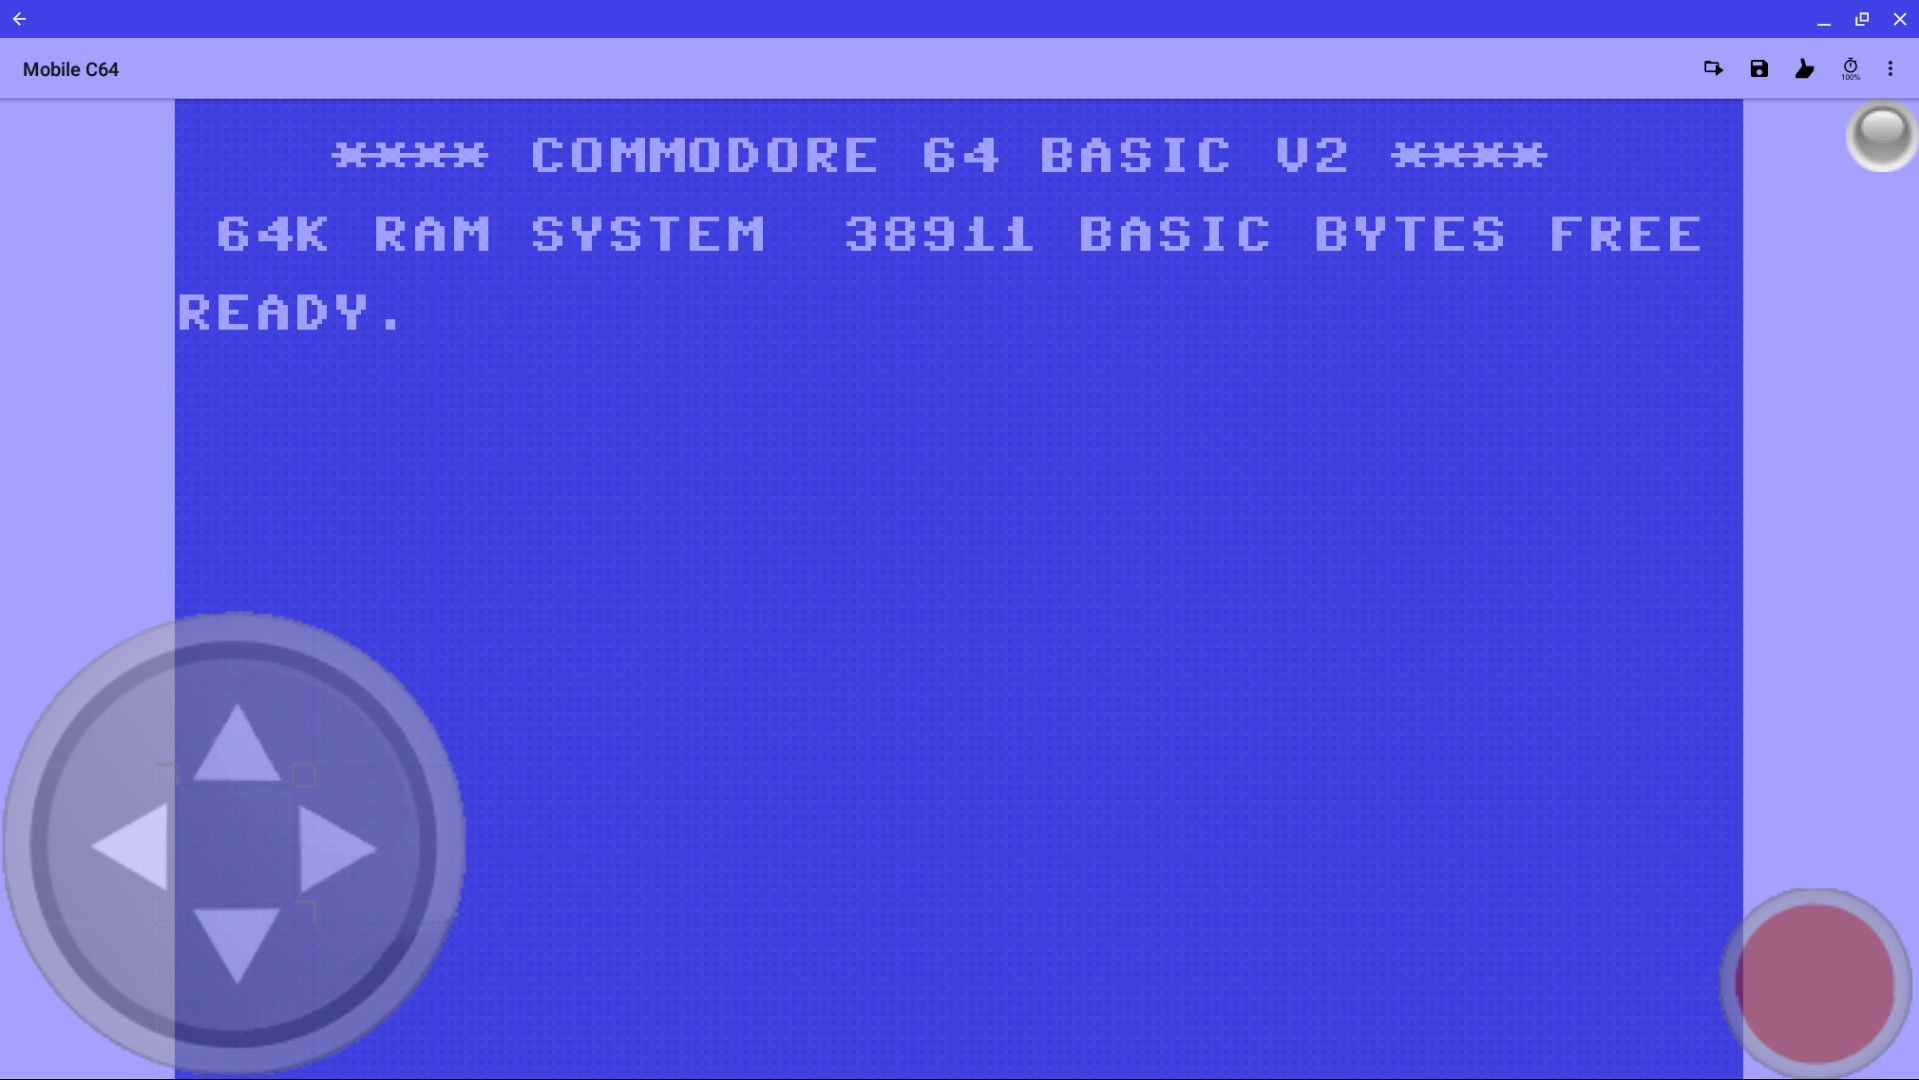 Screenshot of Mobile64 app, with Commodore 64 Basic V2 displayed